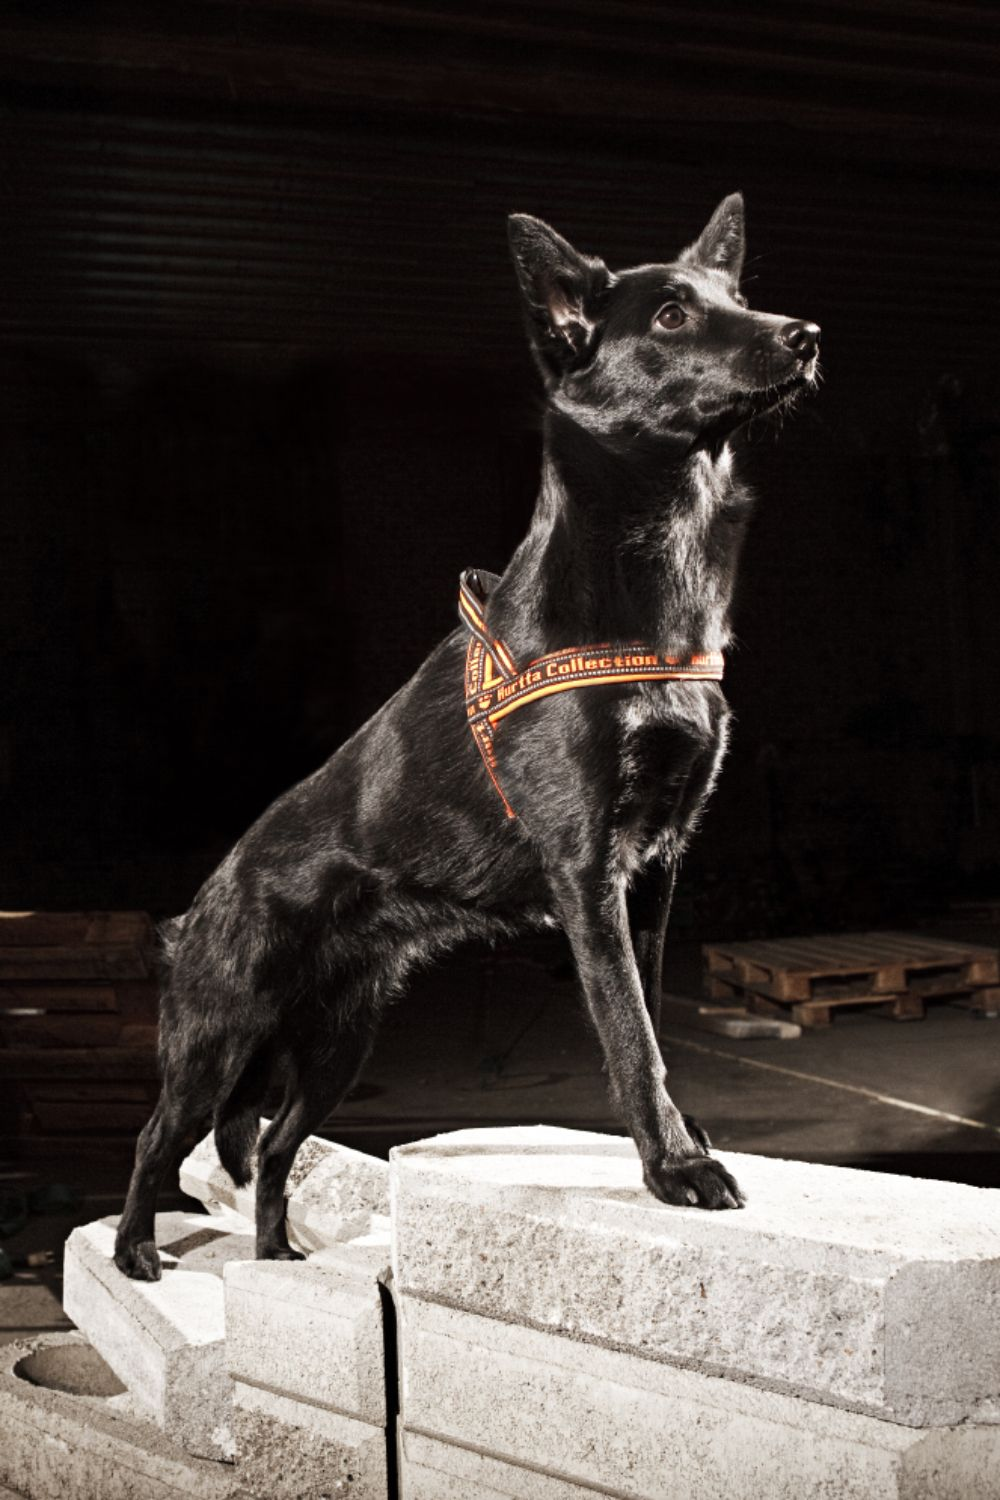 Hurtta Padded Dog Harness Available In Black The Design Of